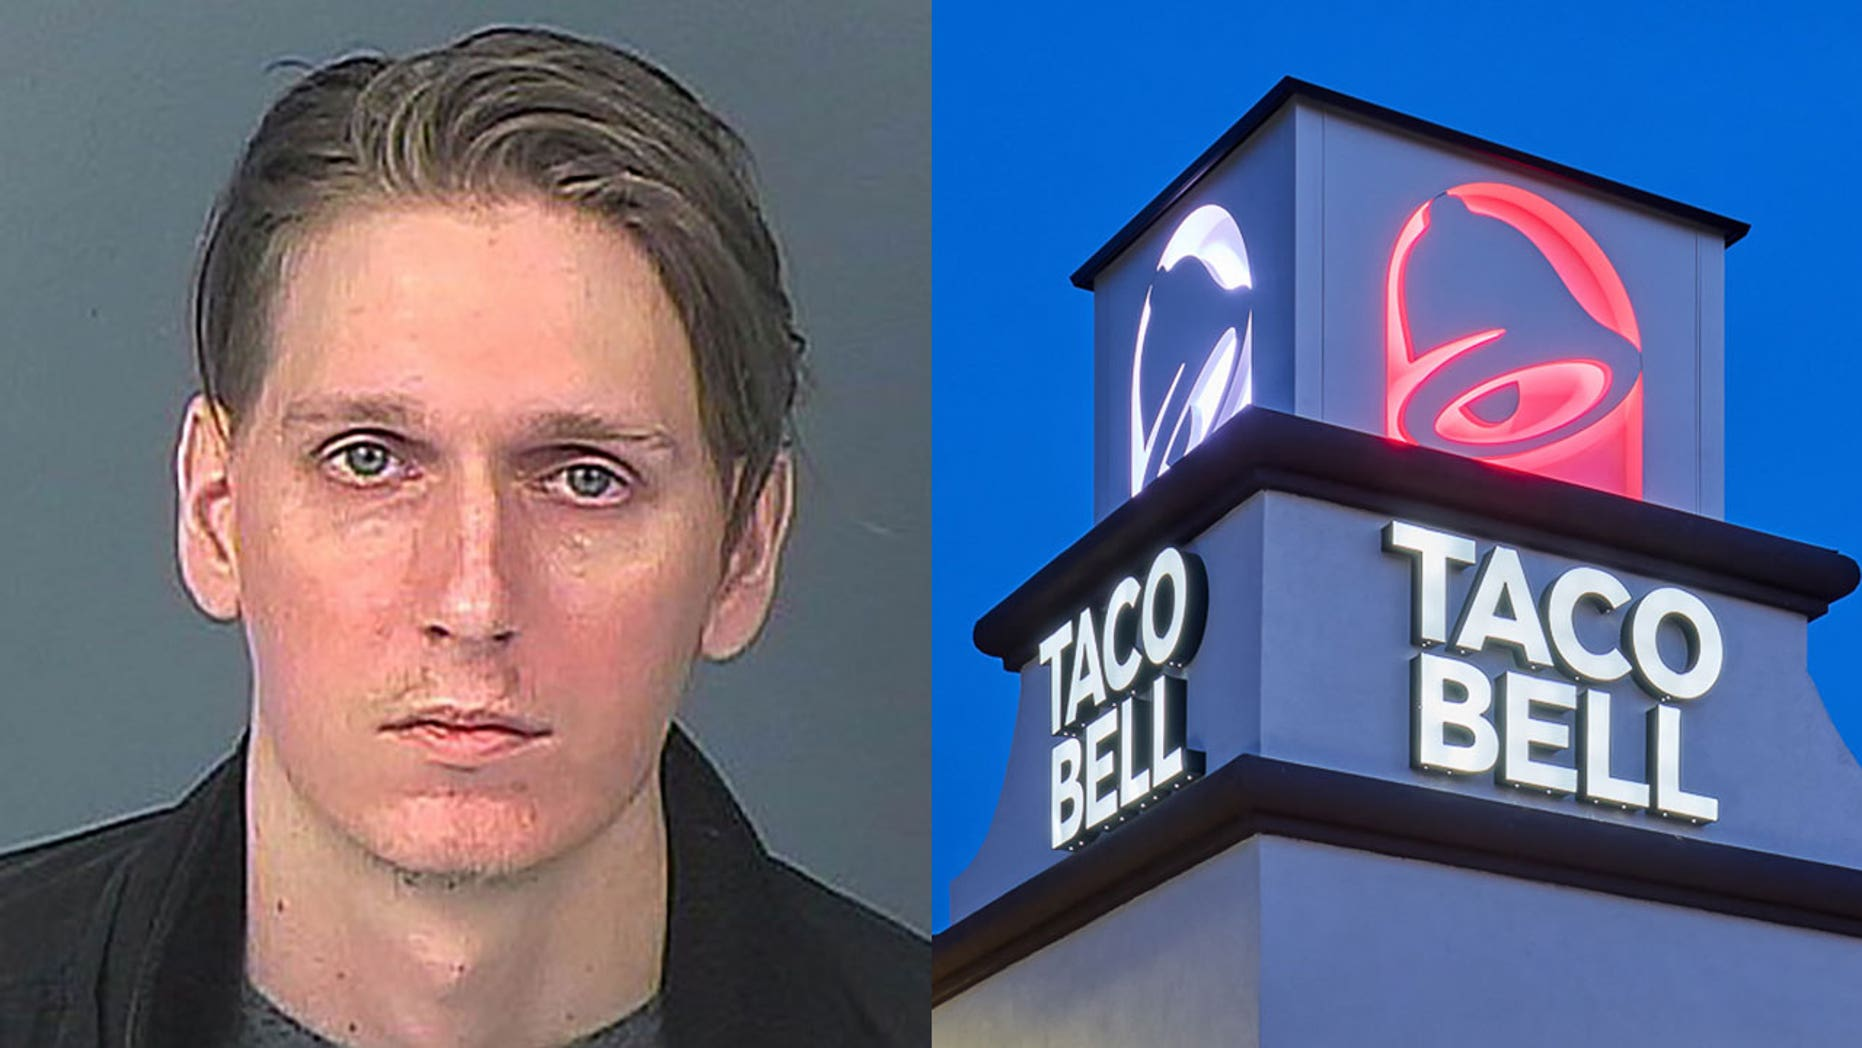 Douglas Francisco presumably thought he had pulled up to a Taco Bell drive-thru and tried to order a burrito.